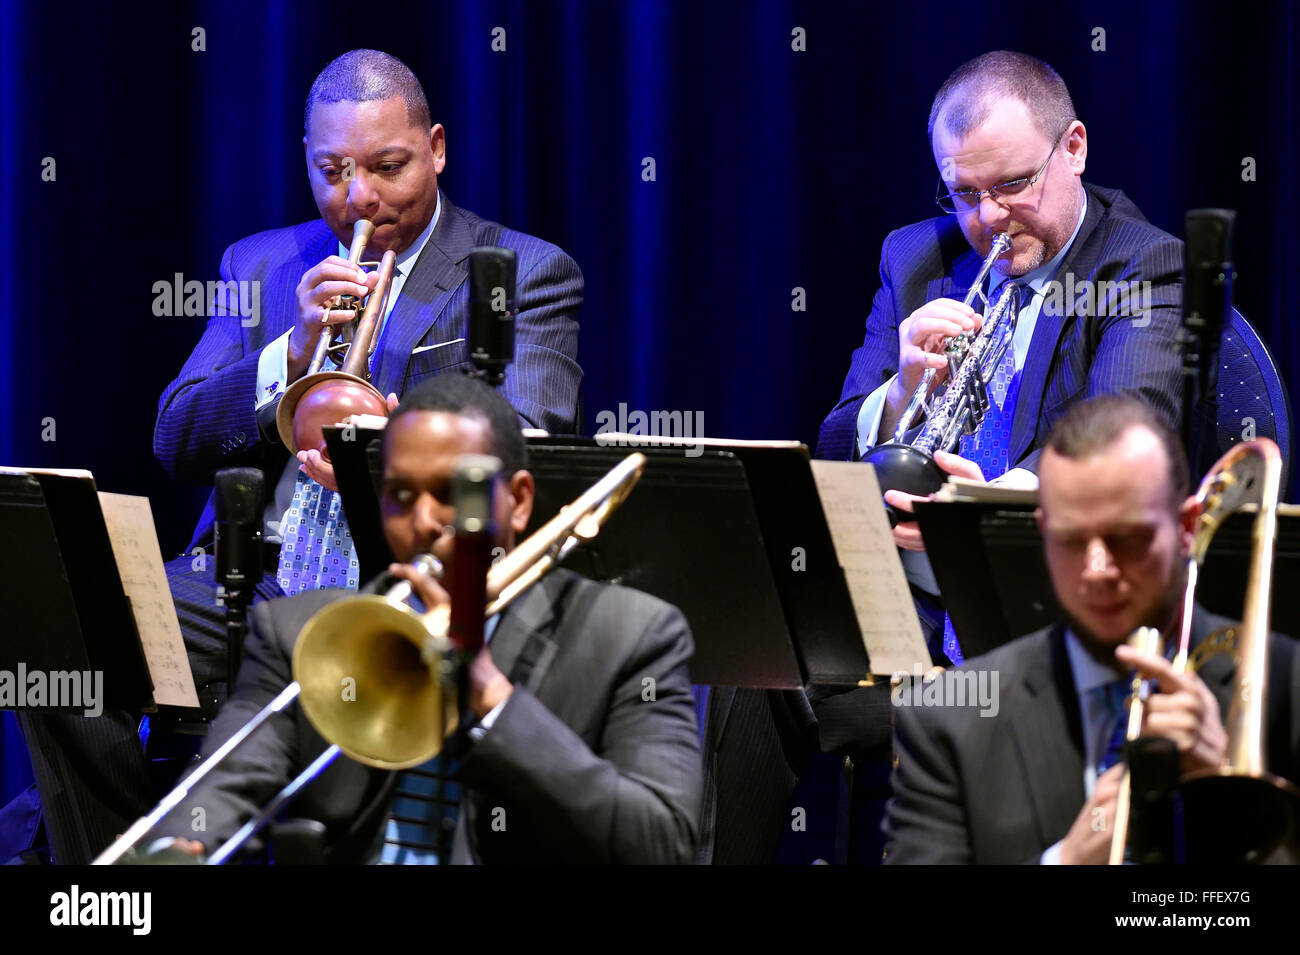 Brno, Tschechische Republik. 12. Februar 2016. US-jazz-Trompeter Wynton Marsalis führt mit dem Jazz at Lincoln Center Stockfoto